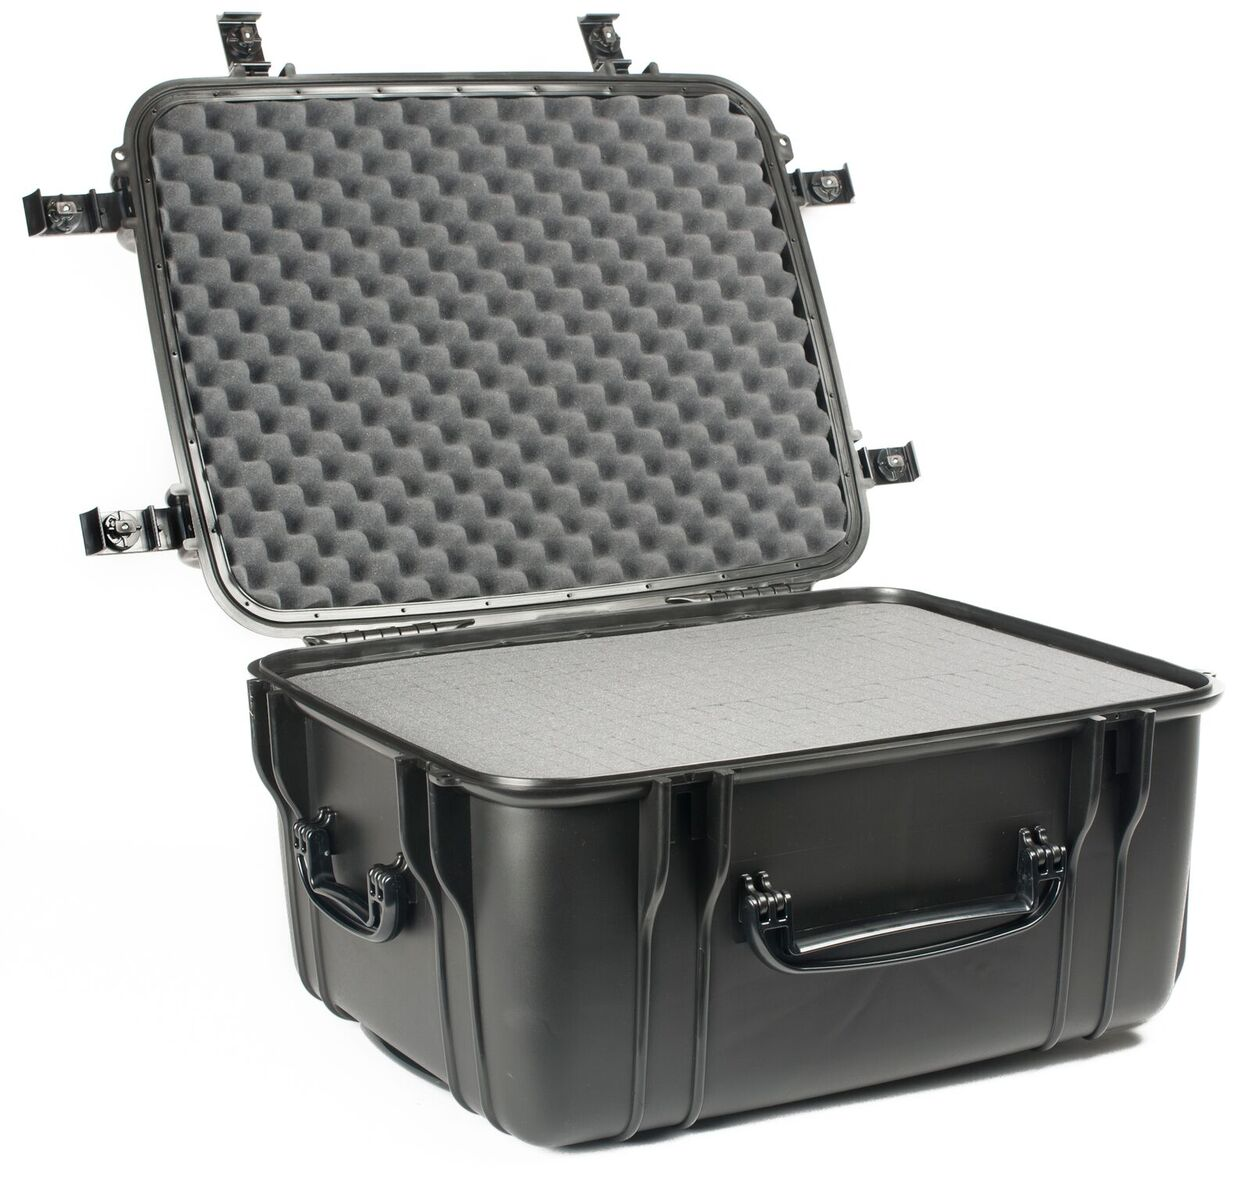 SEAHORSE PROTECTIVE EQUIPMENT CASES      SE1220F,BK